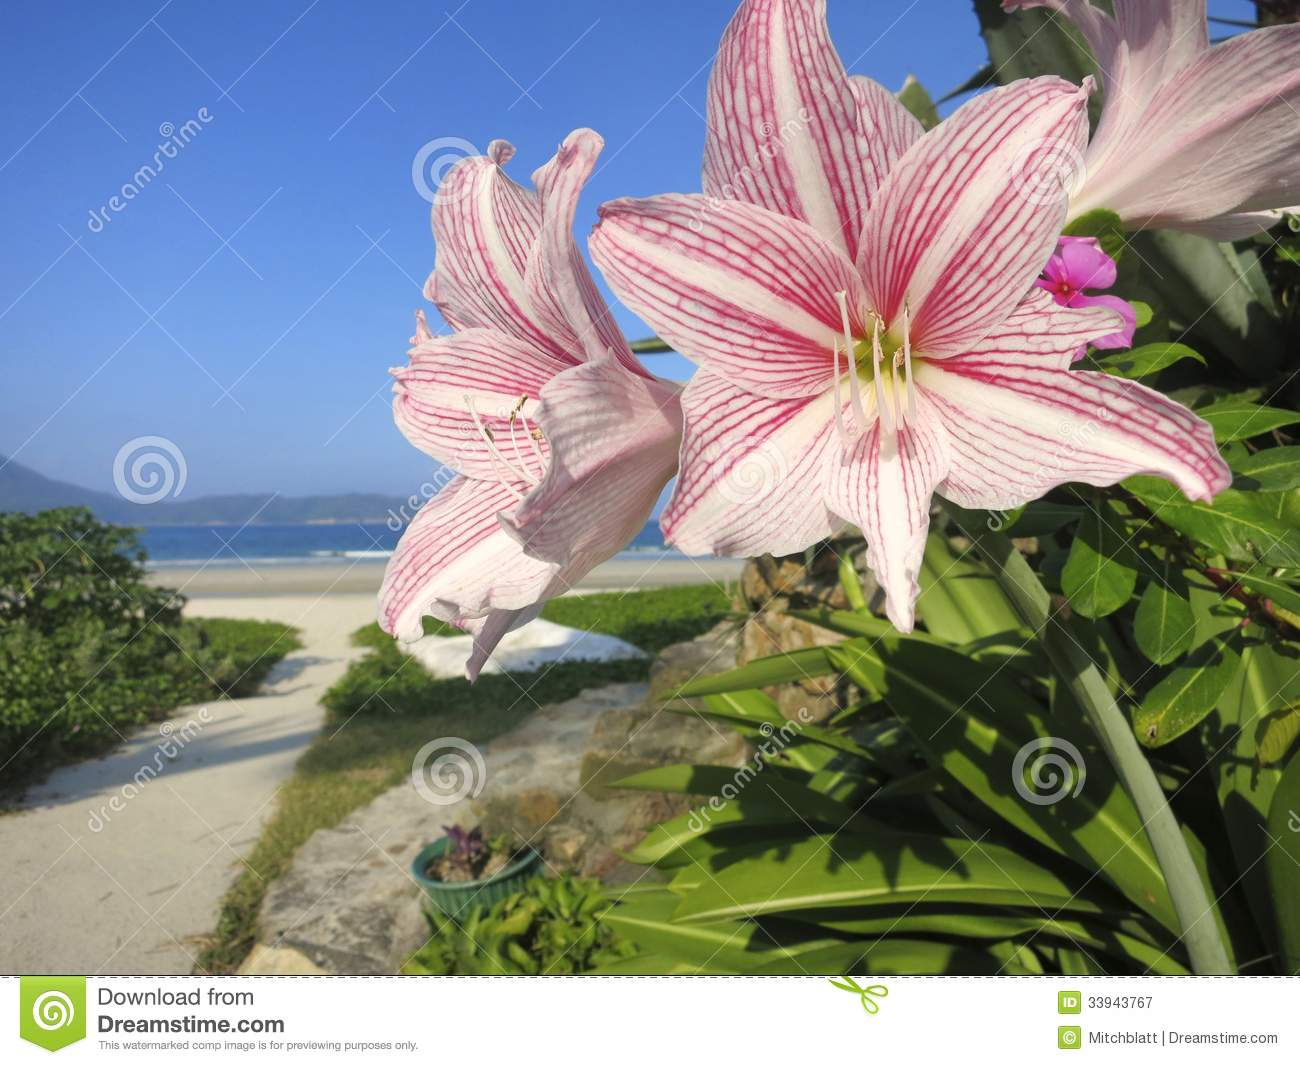 Flower beach beauty white and pink flowers close up in beach download comp izmirmasajfo